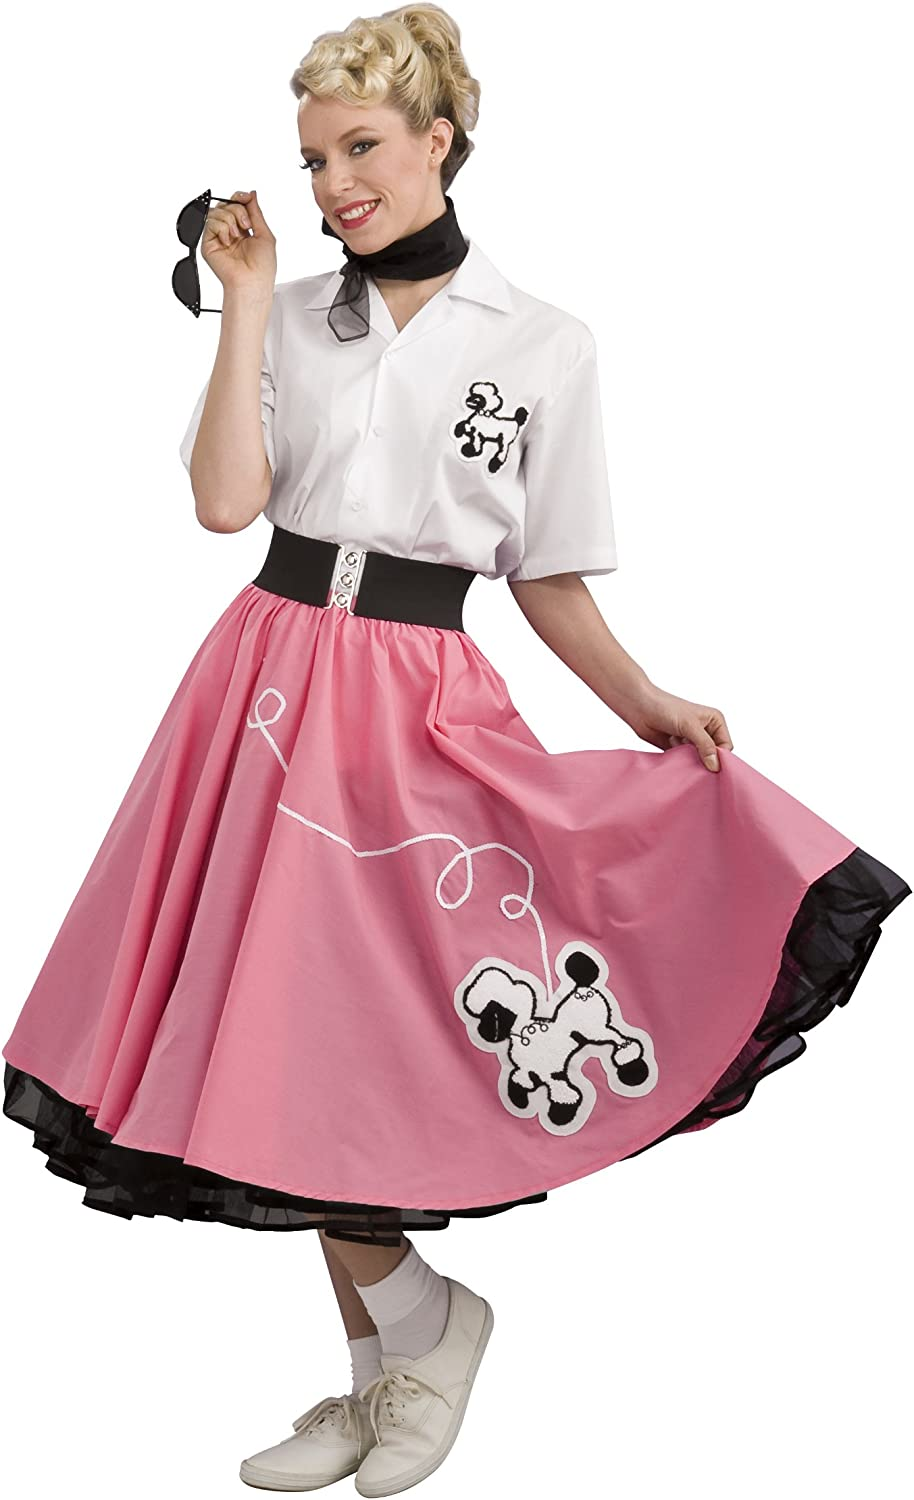 Sock Hop Skirt Scarf White Black Adult Womens Costume Retro 50s Party Halloween